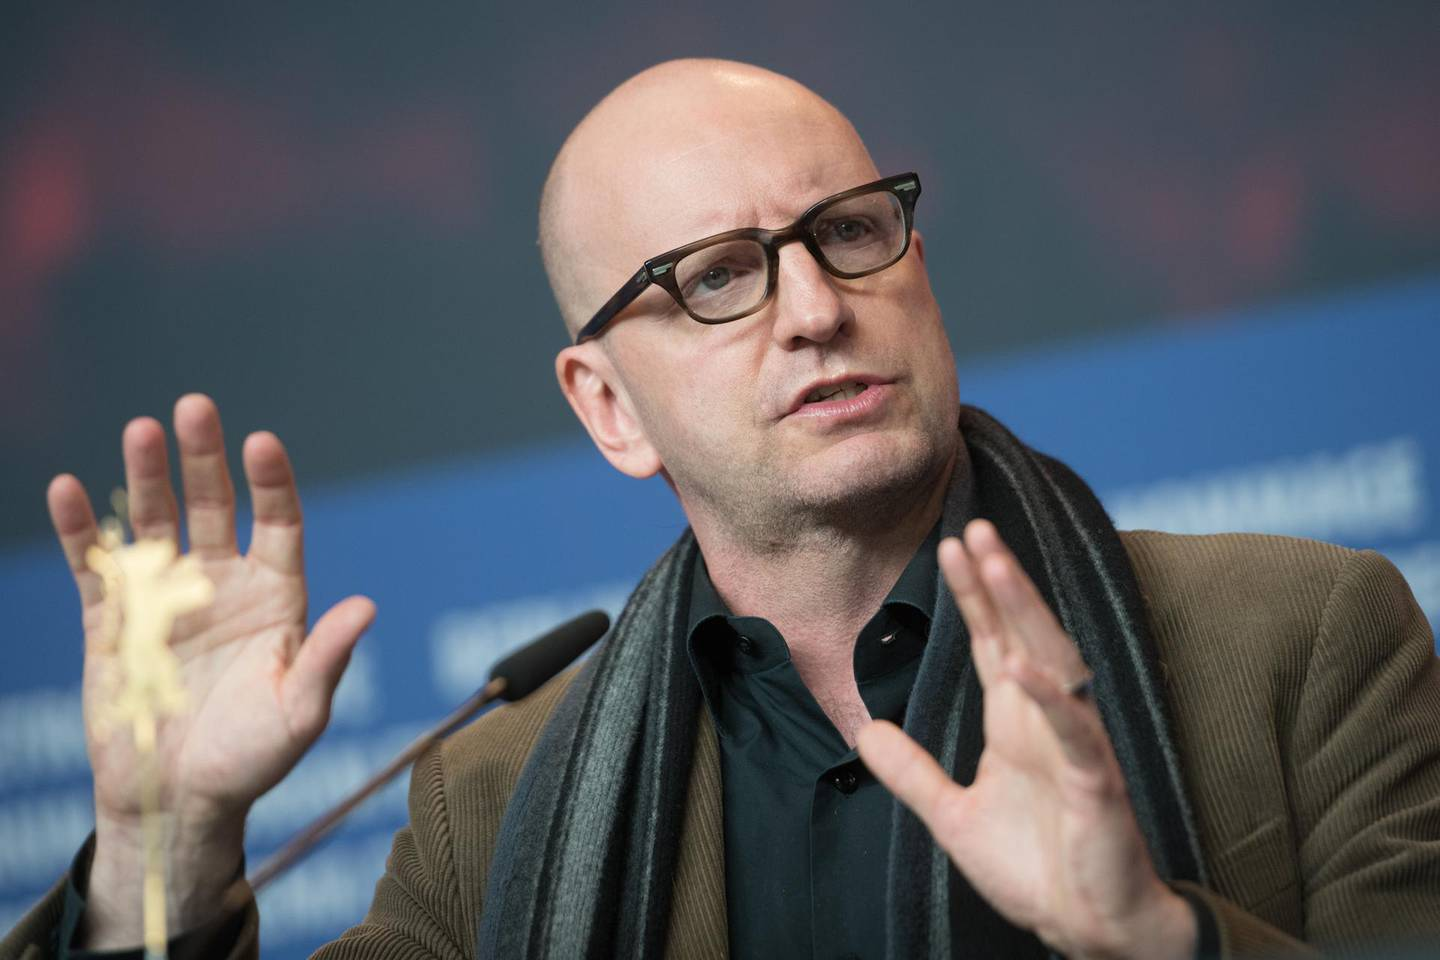 """US director Steven Soderbergh speaks during a press conference for the film """"Unsane"""" presented in competition during the 68th edition of the Berlinale film festival in Berlin on February 21, 2018. / AFP PHOTO / Stefanie LOOS"""